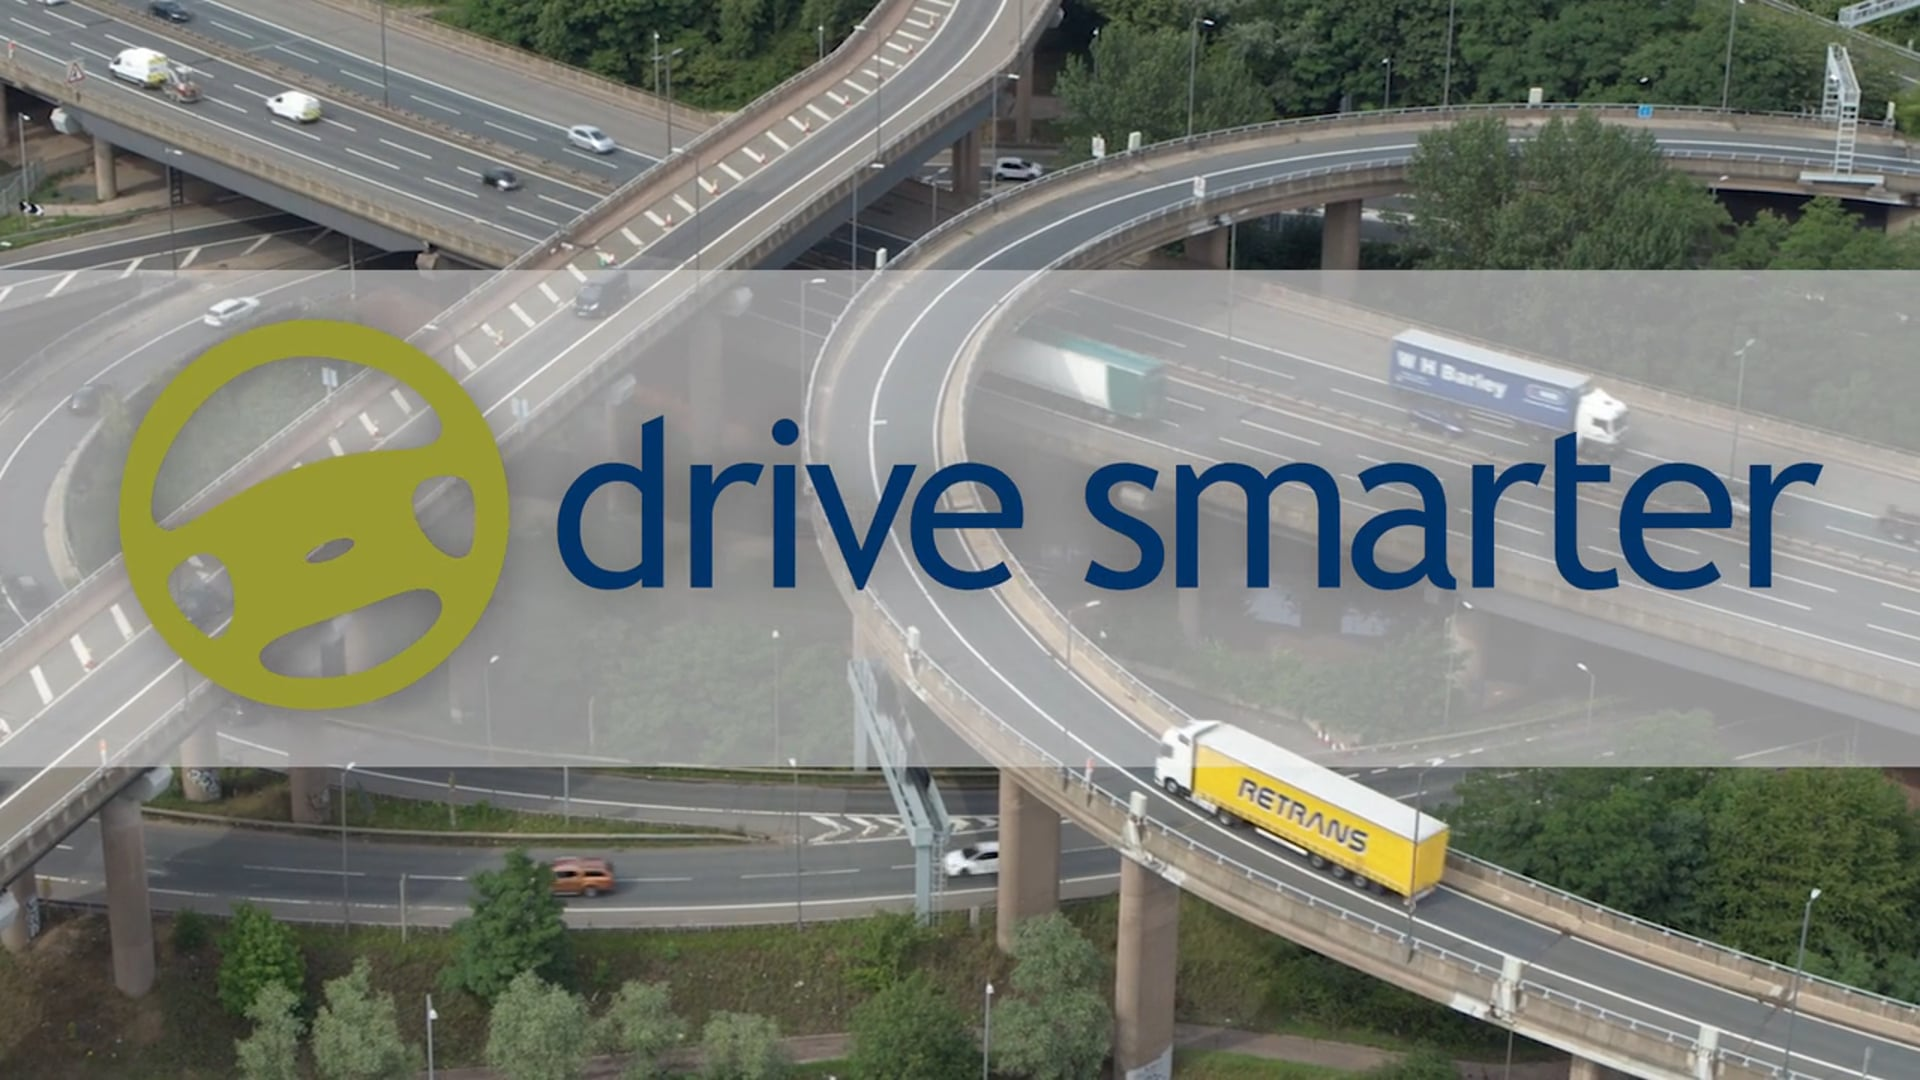 ABOUT DRIVE SMARTER